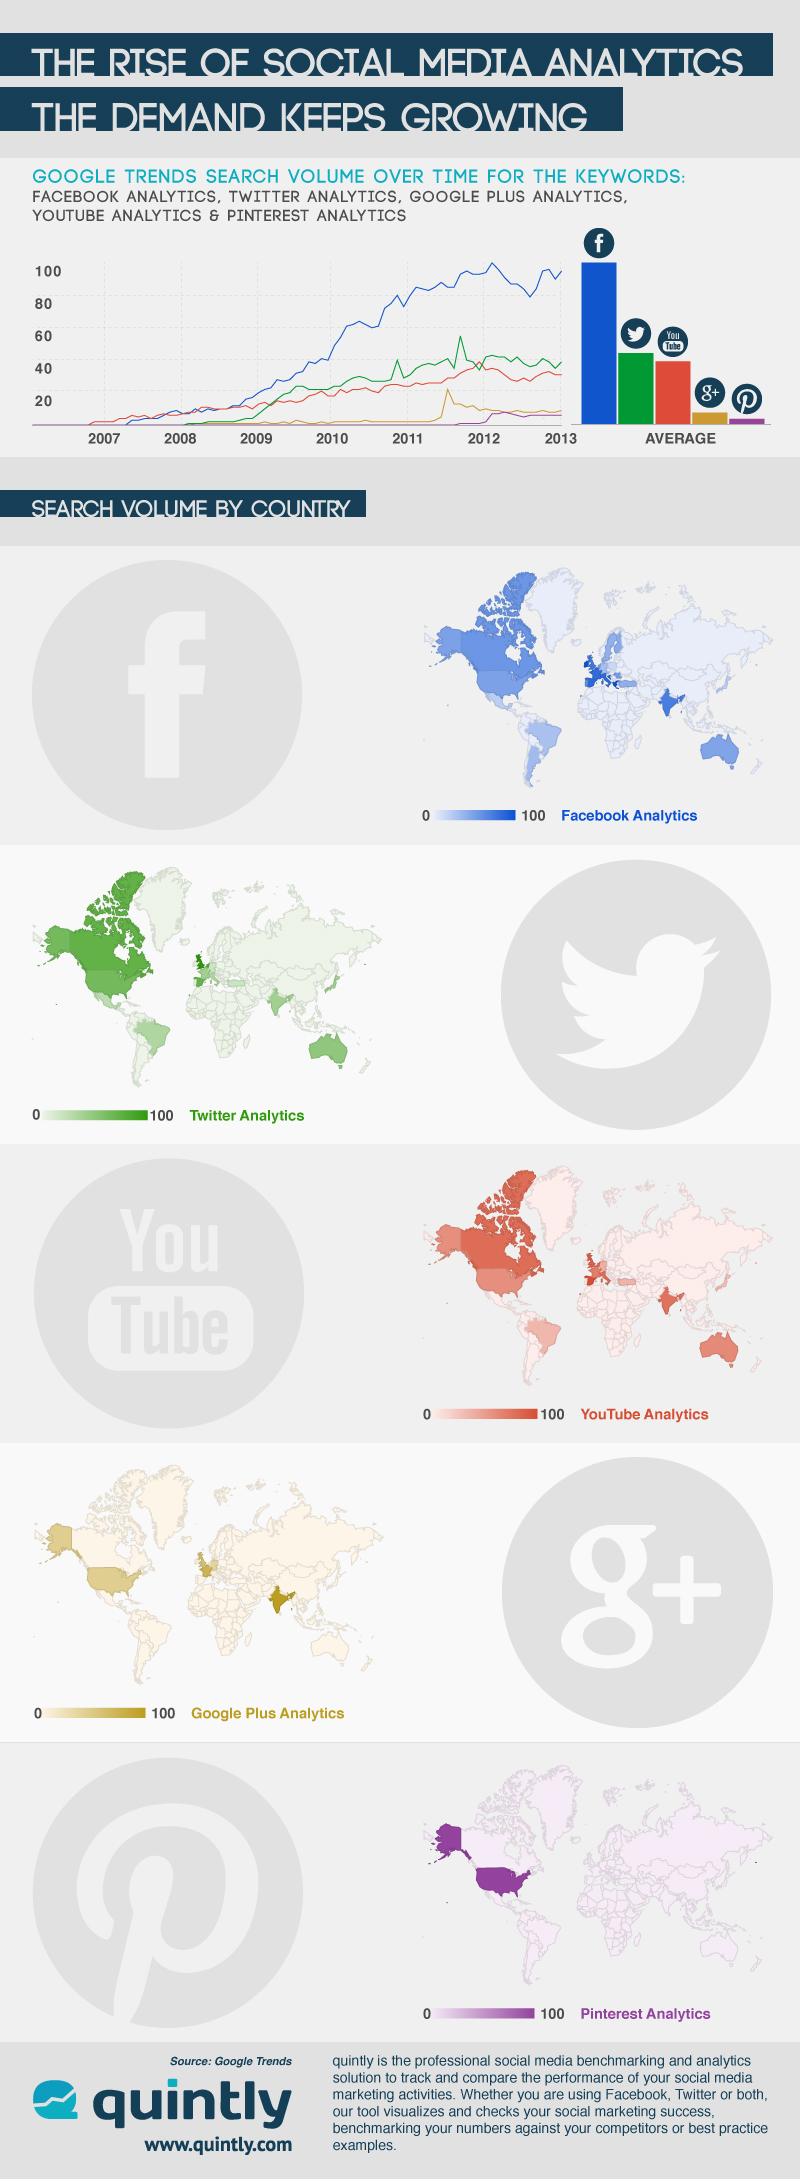 quintly Infographic: The Rise Of Social Media Analytics – The Demand Keeps Growing